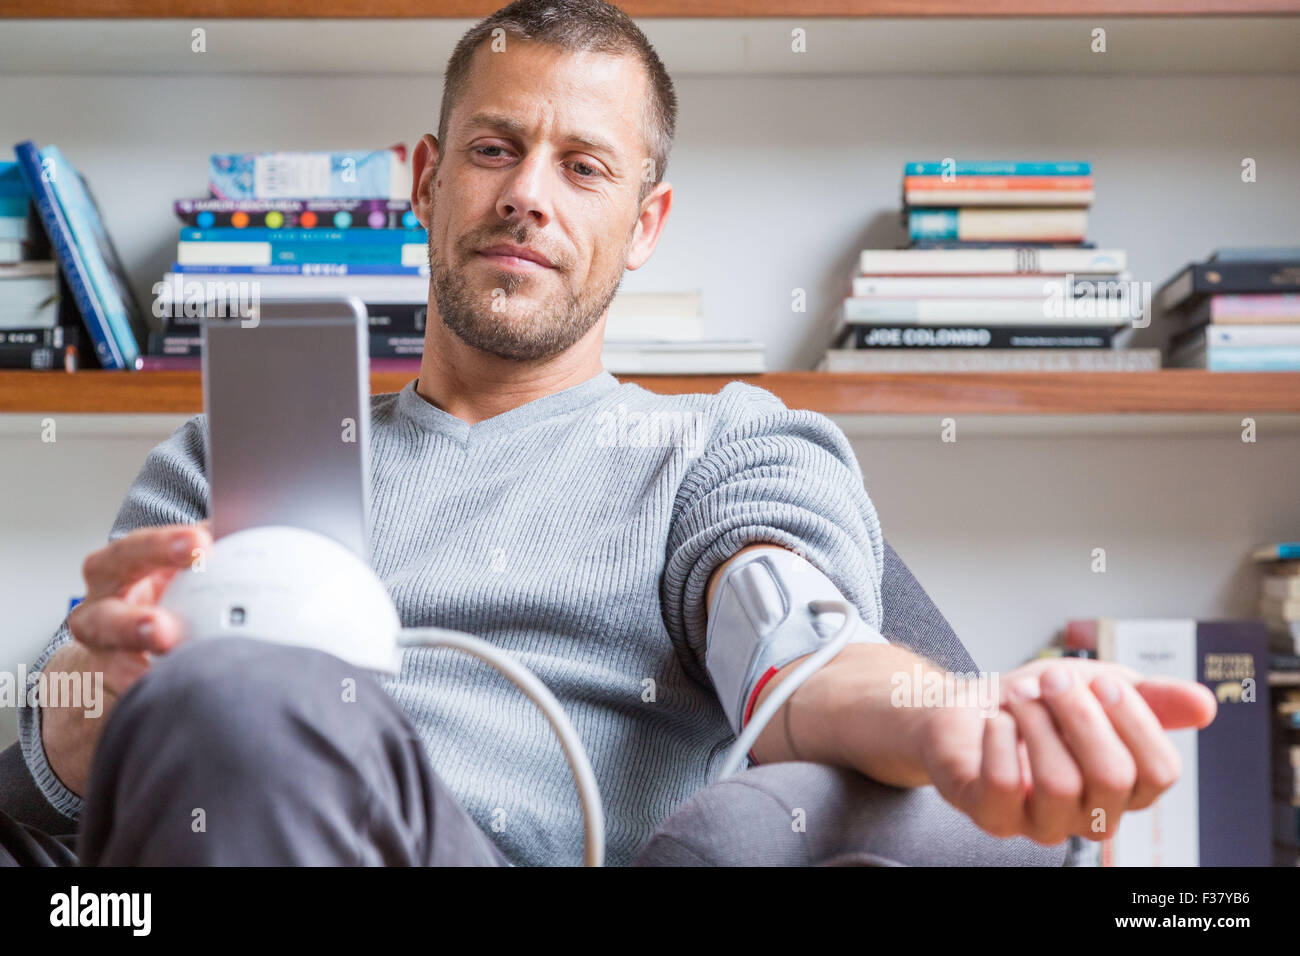 Man taking his blood pressure with a sphygmomanometer connected to his cell phone. - Stock Image